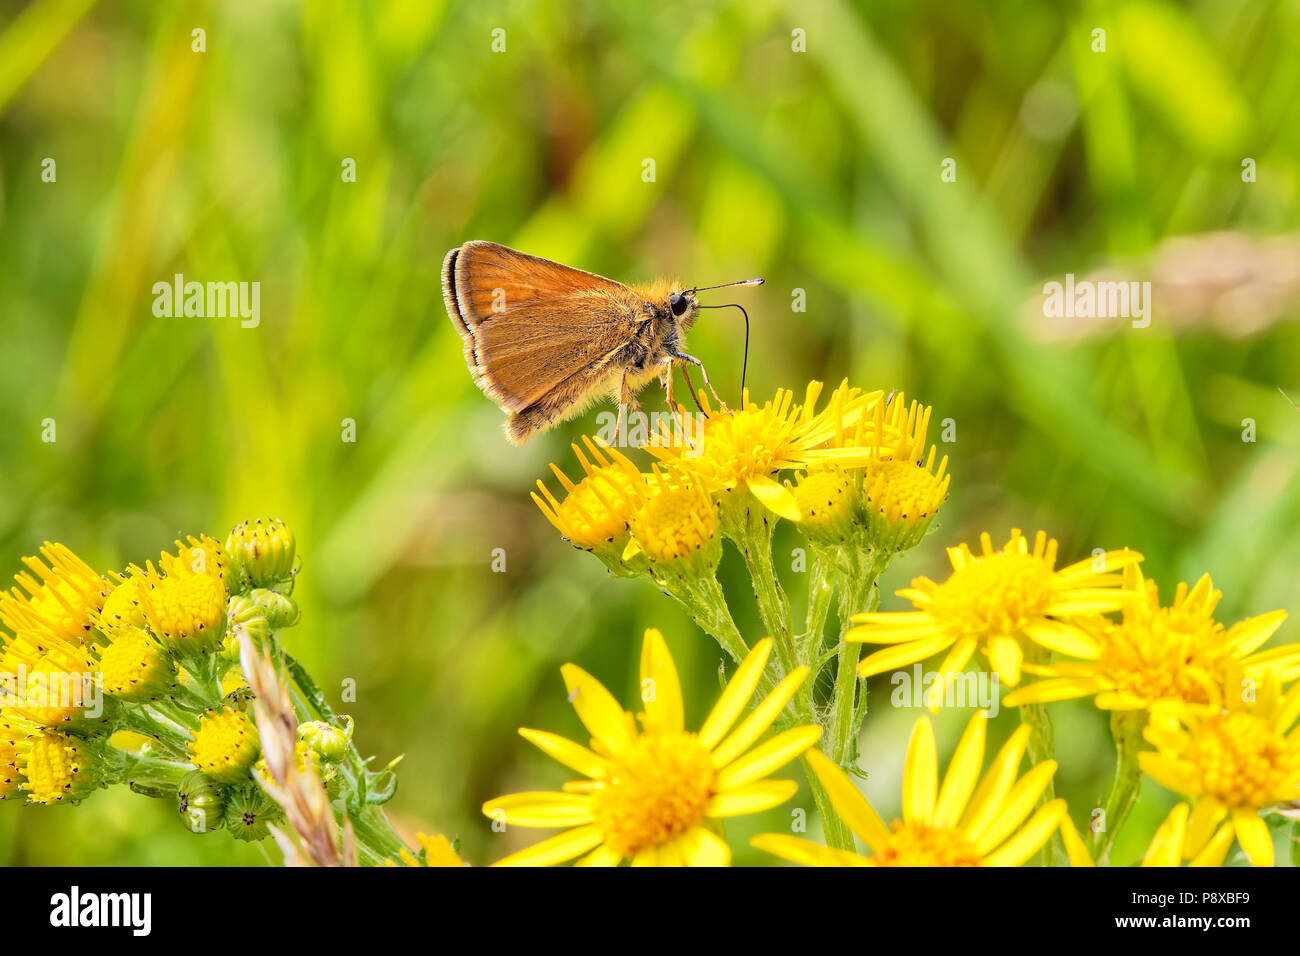 Close up of a Small Skipper butterfly feeding on nectar from a Groundsell flower - Stock Image